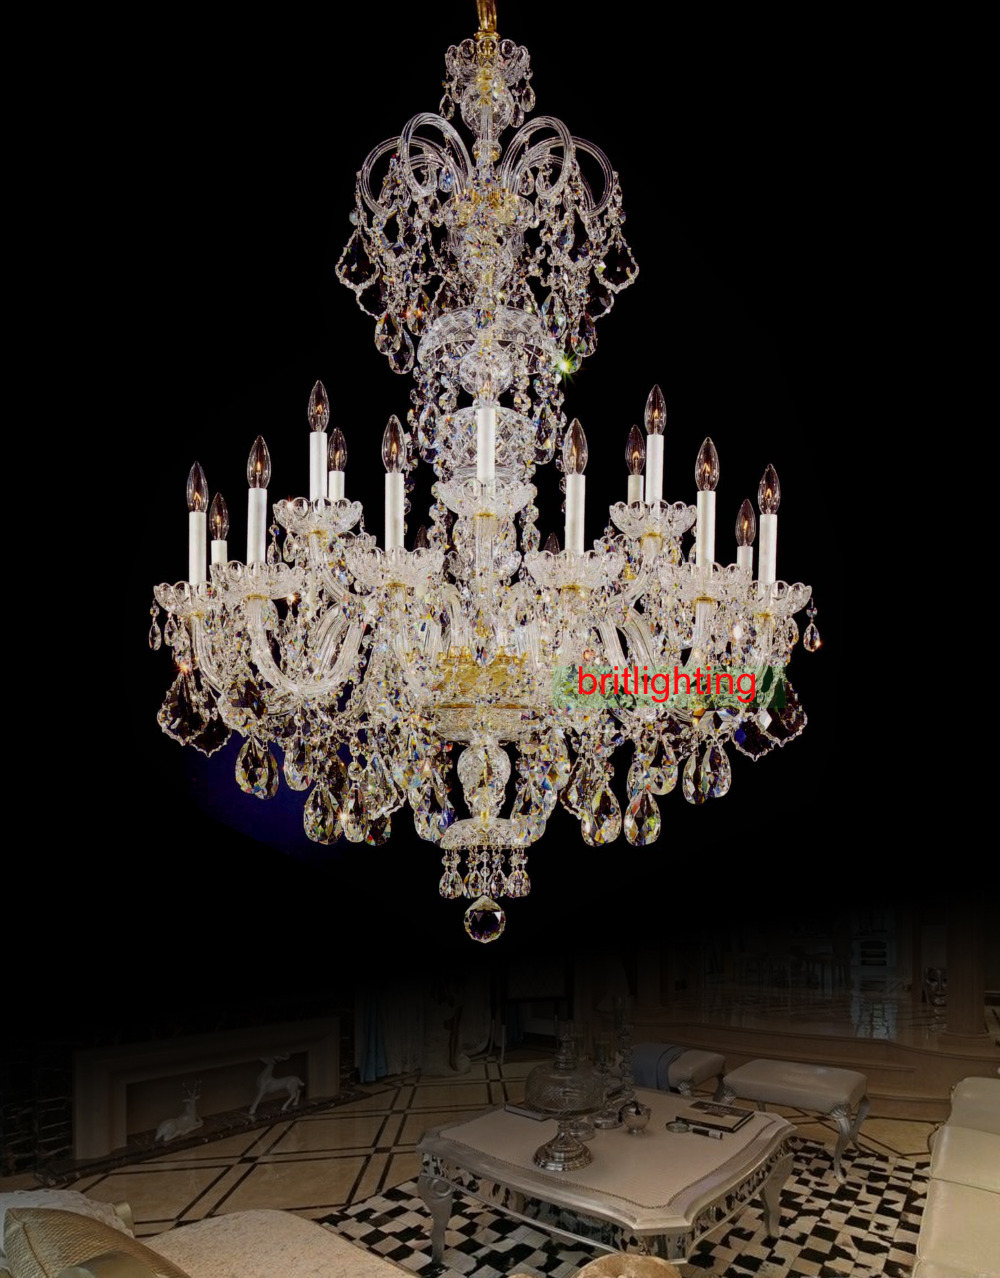 Aliexpress Large Crystal Chandelier Entrance Hall Lighting Luxury Light Fashion Chain From